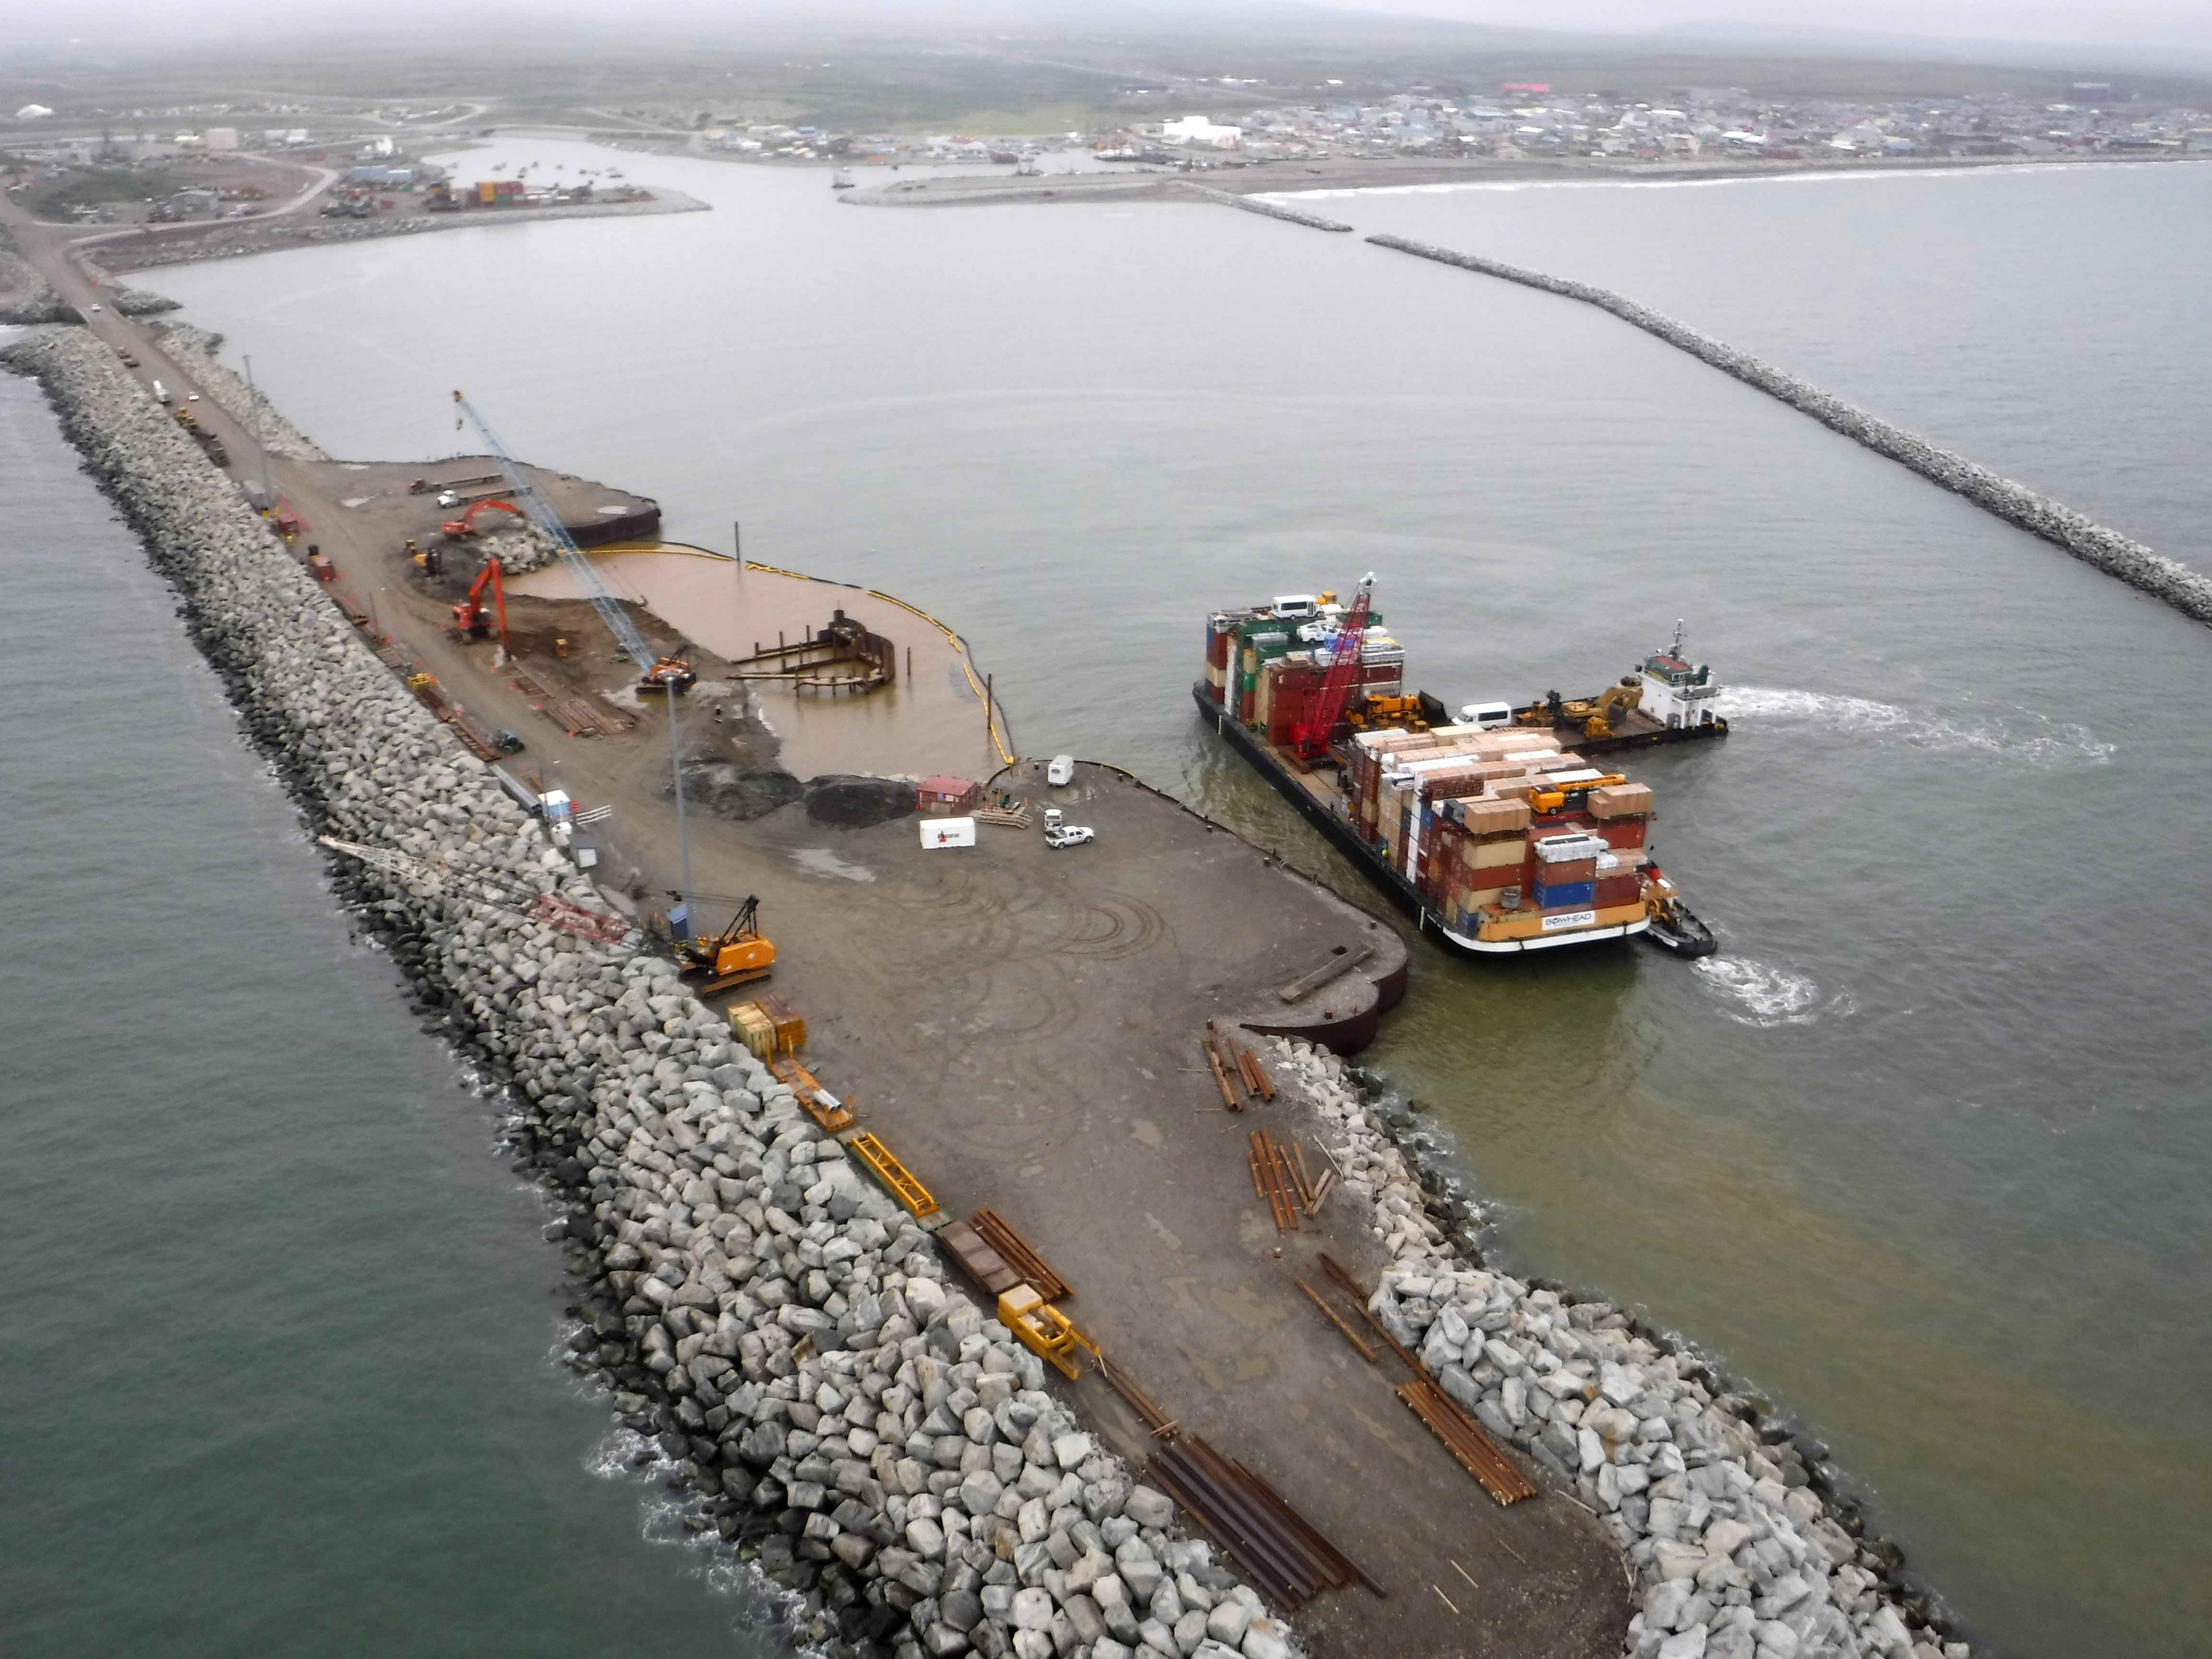 The US federal government has greenlighted the next phase of Nome's port expansion